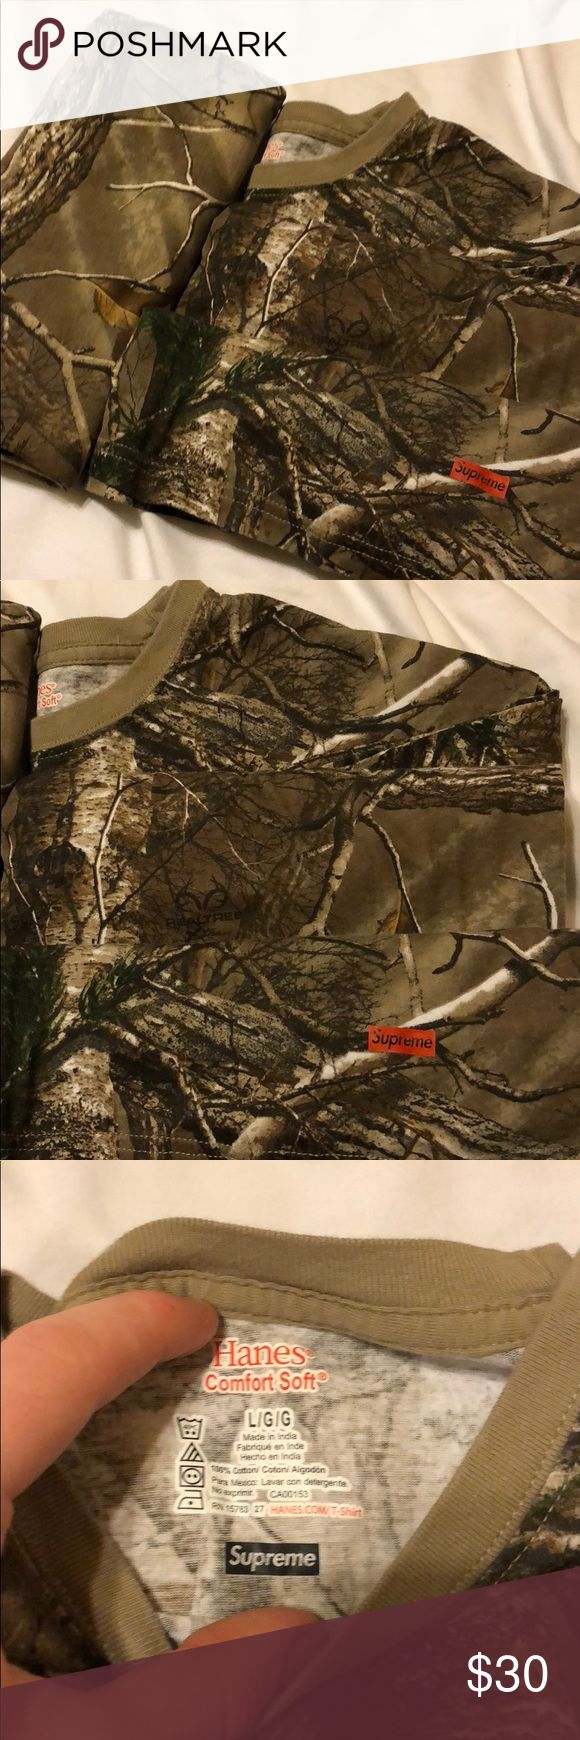 Supreme RealTree Hanes T-Shirt RealTree Supreme T-Shirt, Never Worn Just Washed, come together Supreme Shirts Tees - Short Sleeve